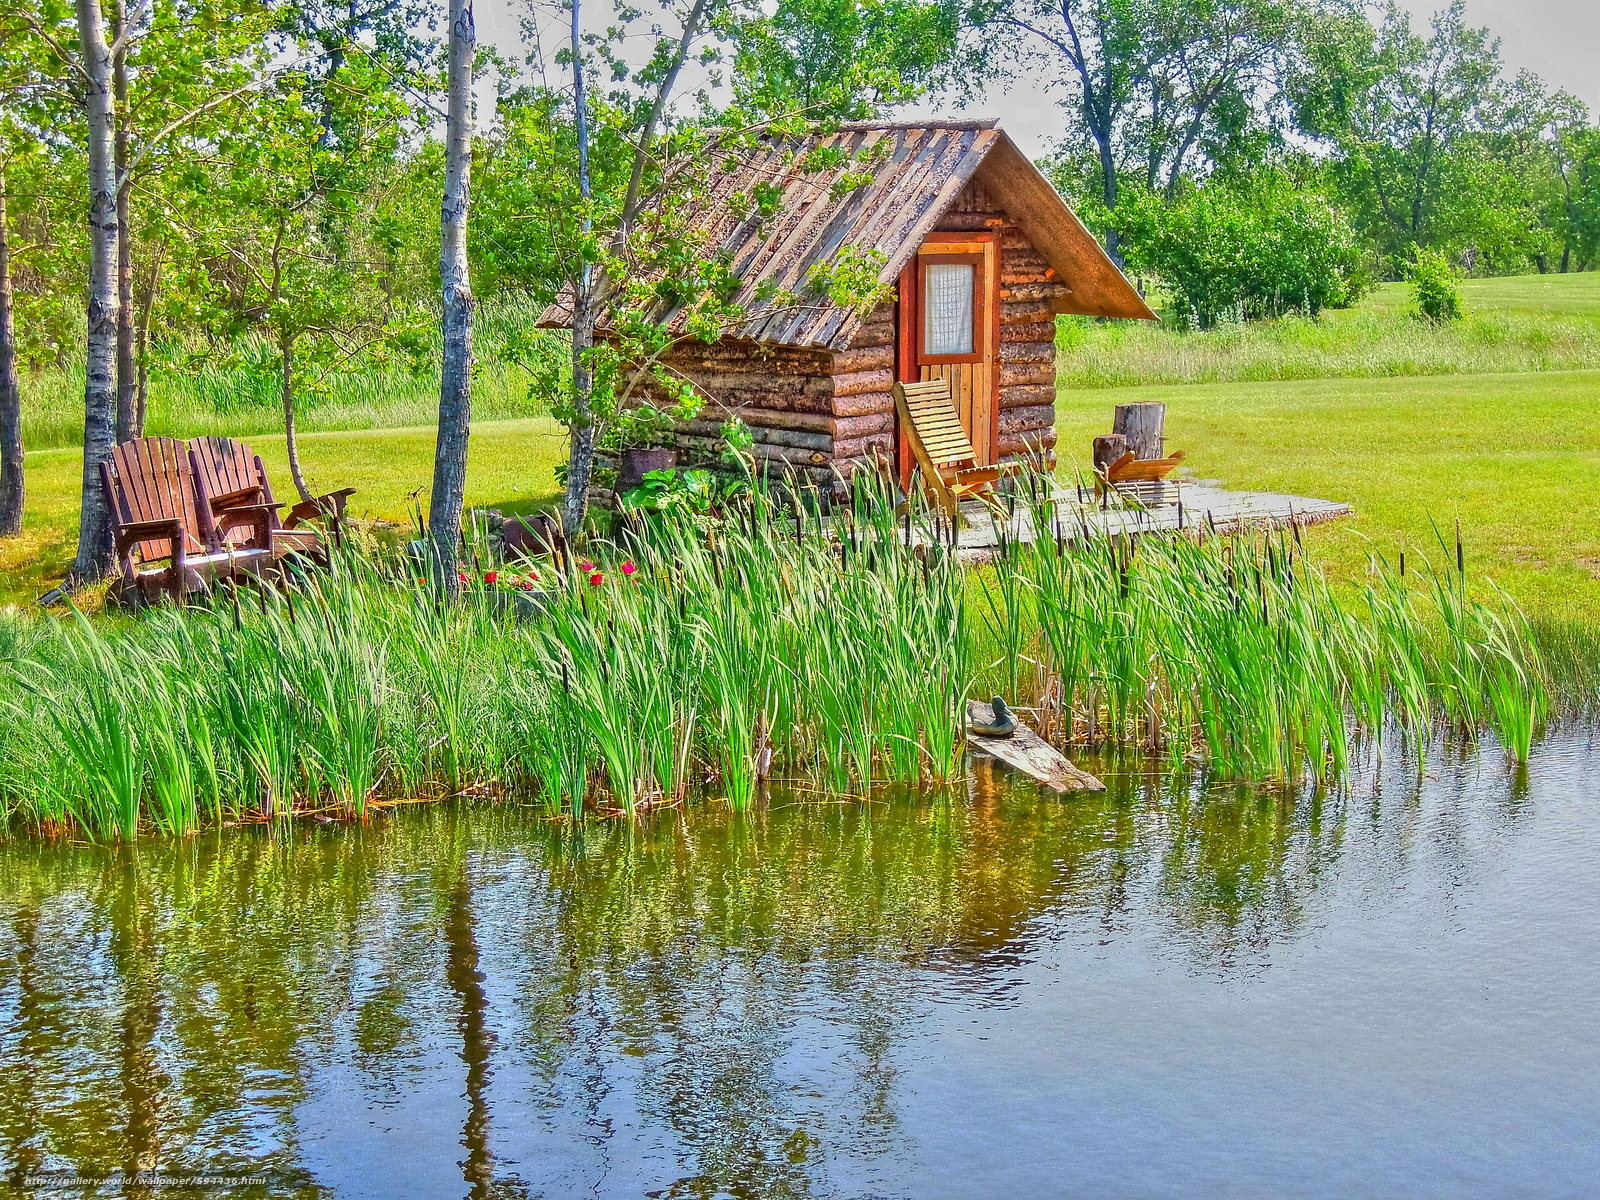 Download wallpaper pond cabin trees landscape free desktop wallpaper in the resolution - Wallpaper 3000 x 4000 ...